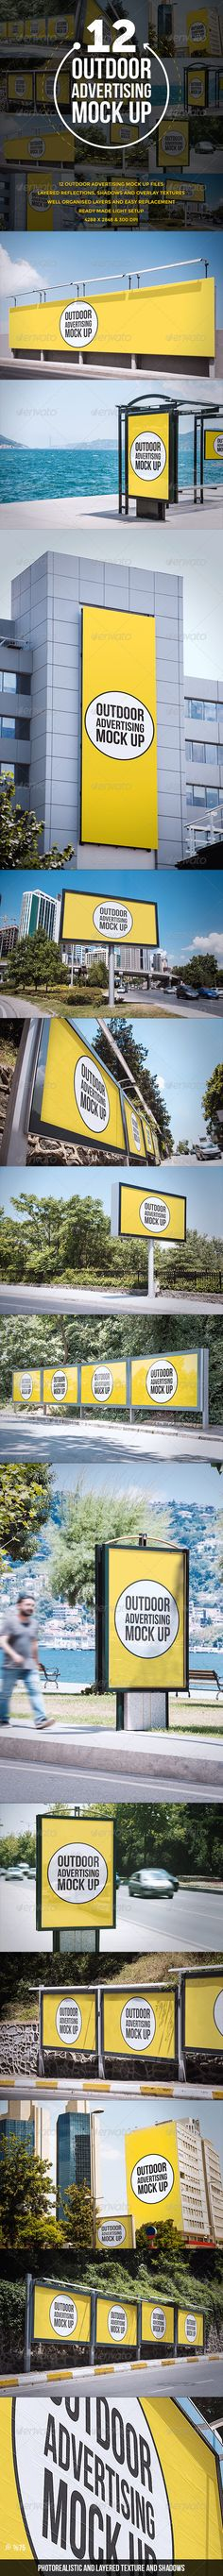 Outdoor Advertising Mock Up - Print Mockup Template by MockupZone. Mock Up, Outdoor Signage, Sports Flyer, Information Graphics, Business Design, Billboard, Banners, Photoshop, Graphic Design